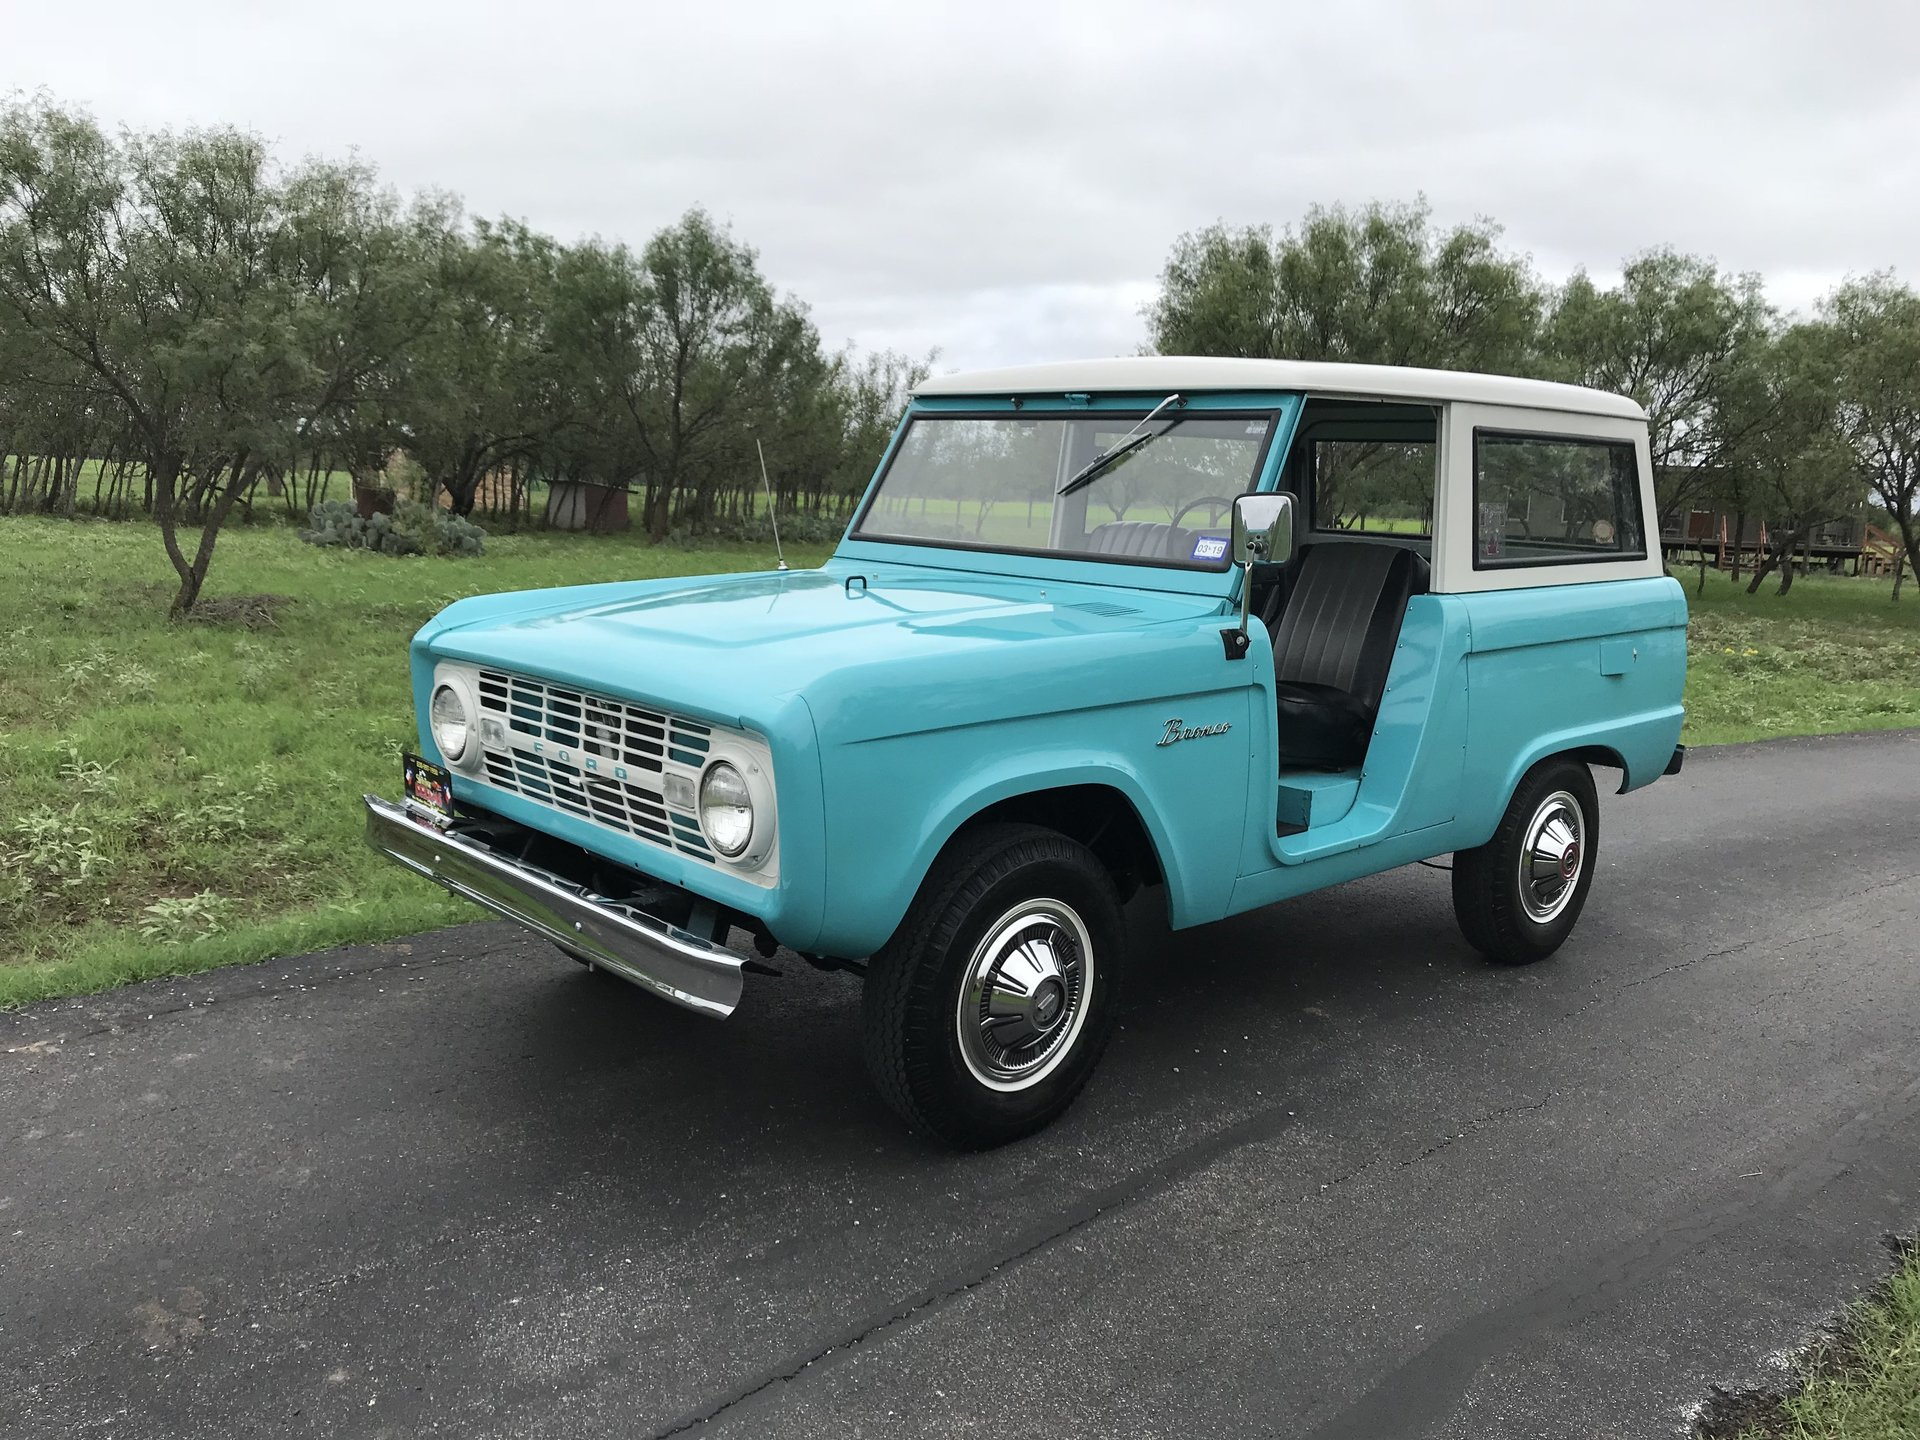 Inventory My Classic Garage 1980 Ford Bronco Blue